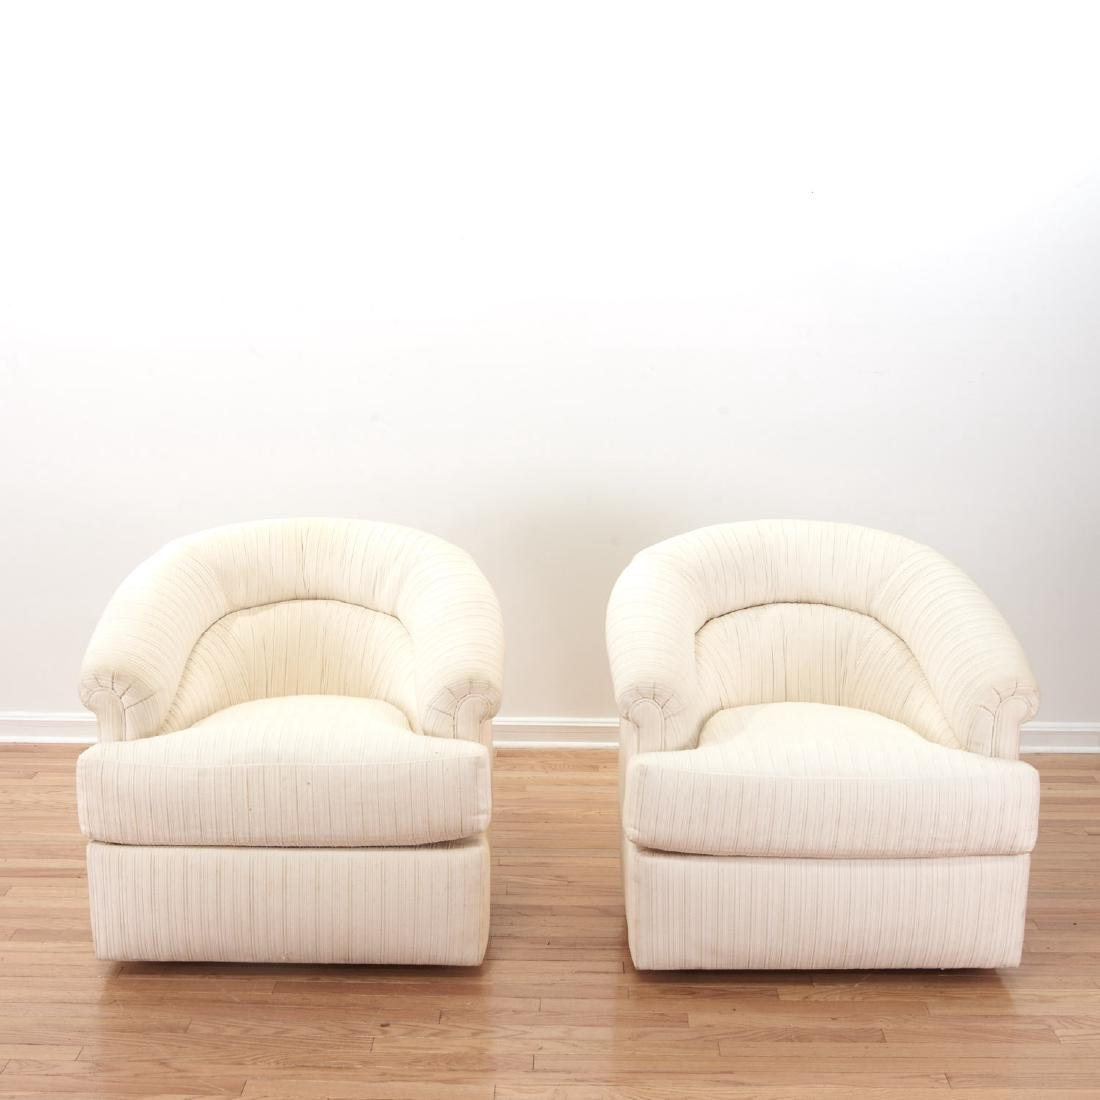 Karl Springer style upholstered club chairs